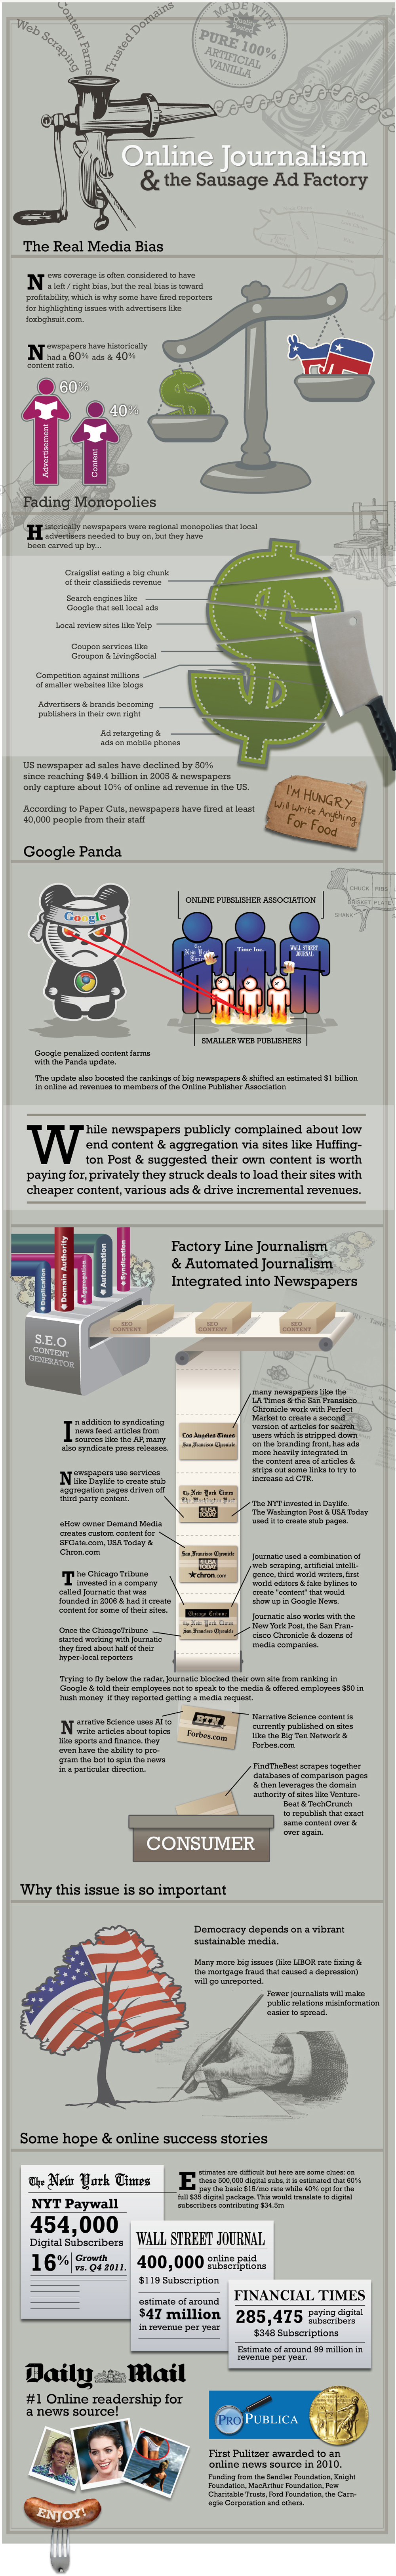 Online Journalism & the Sausage Factory.